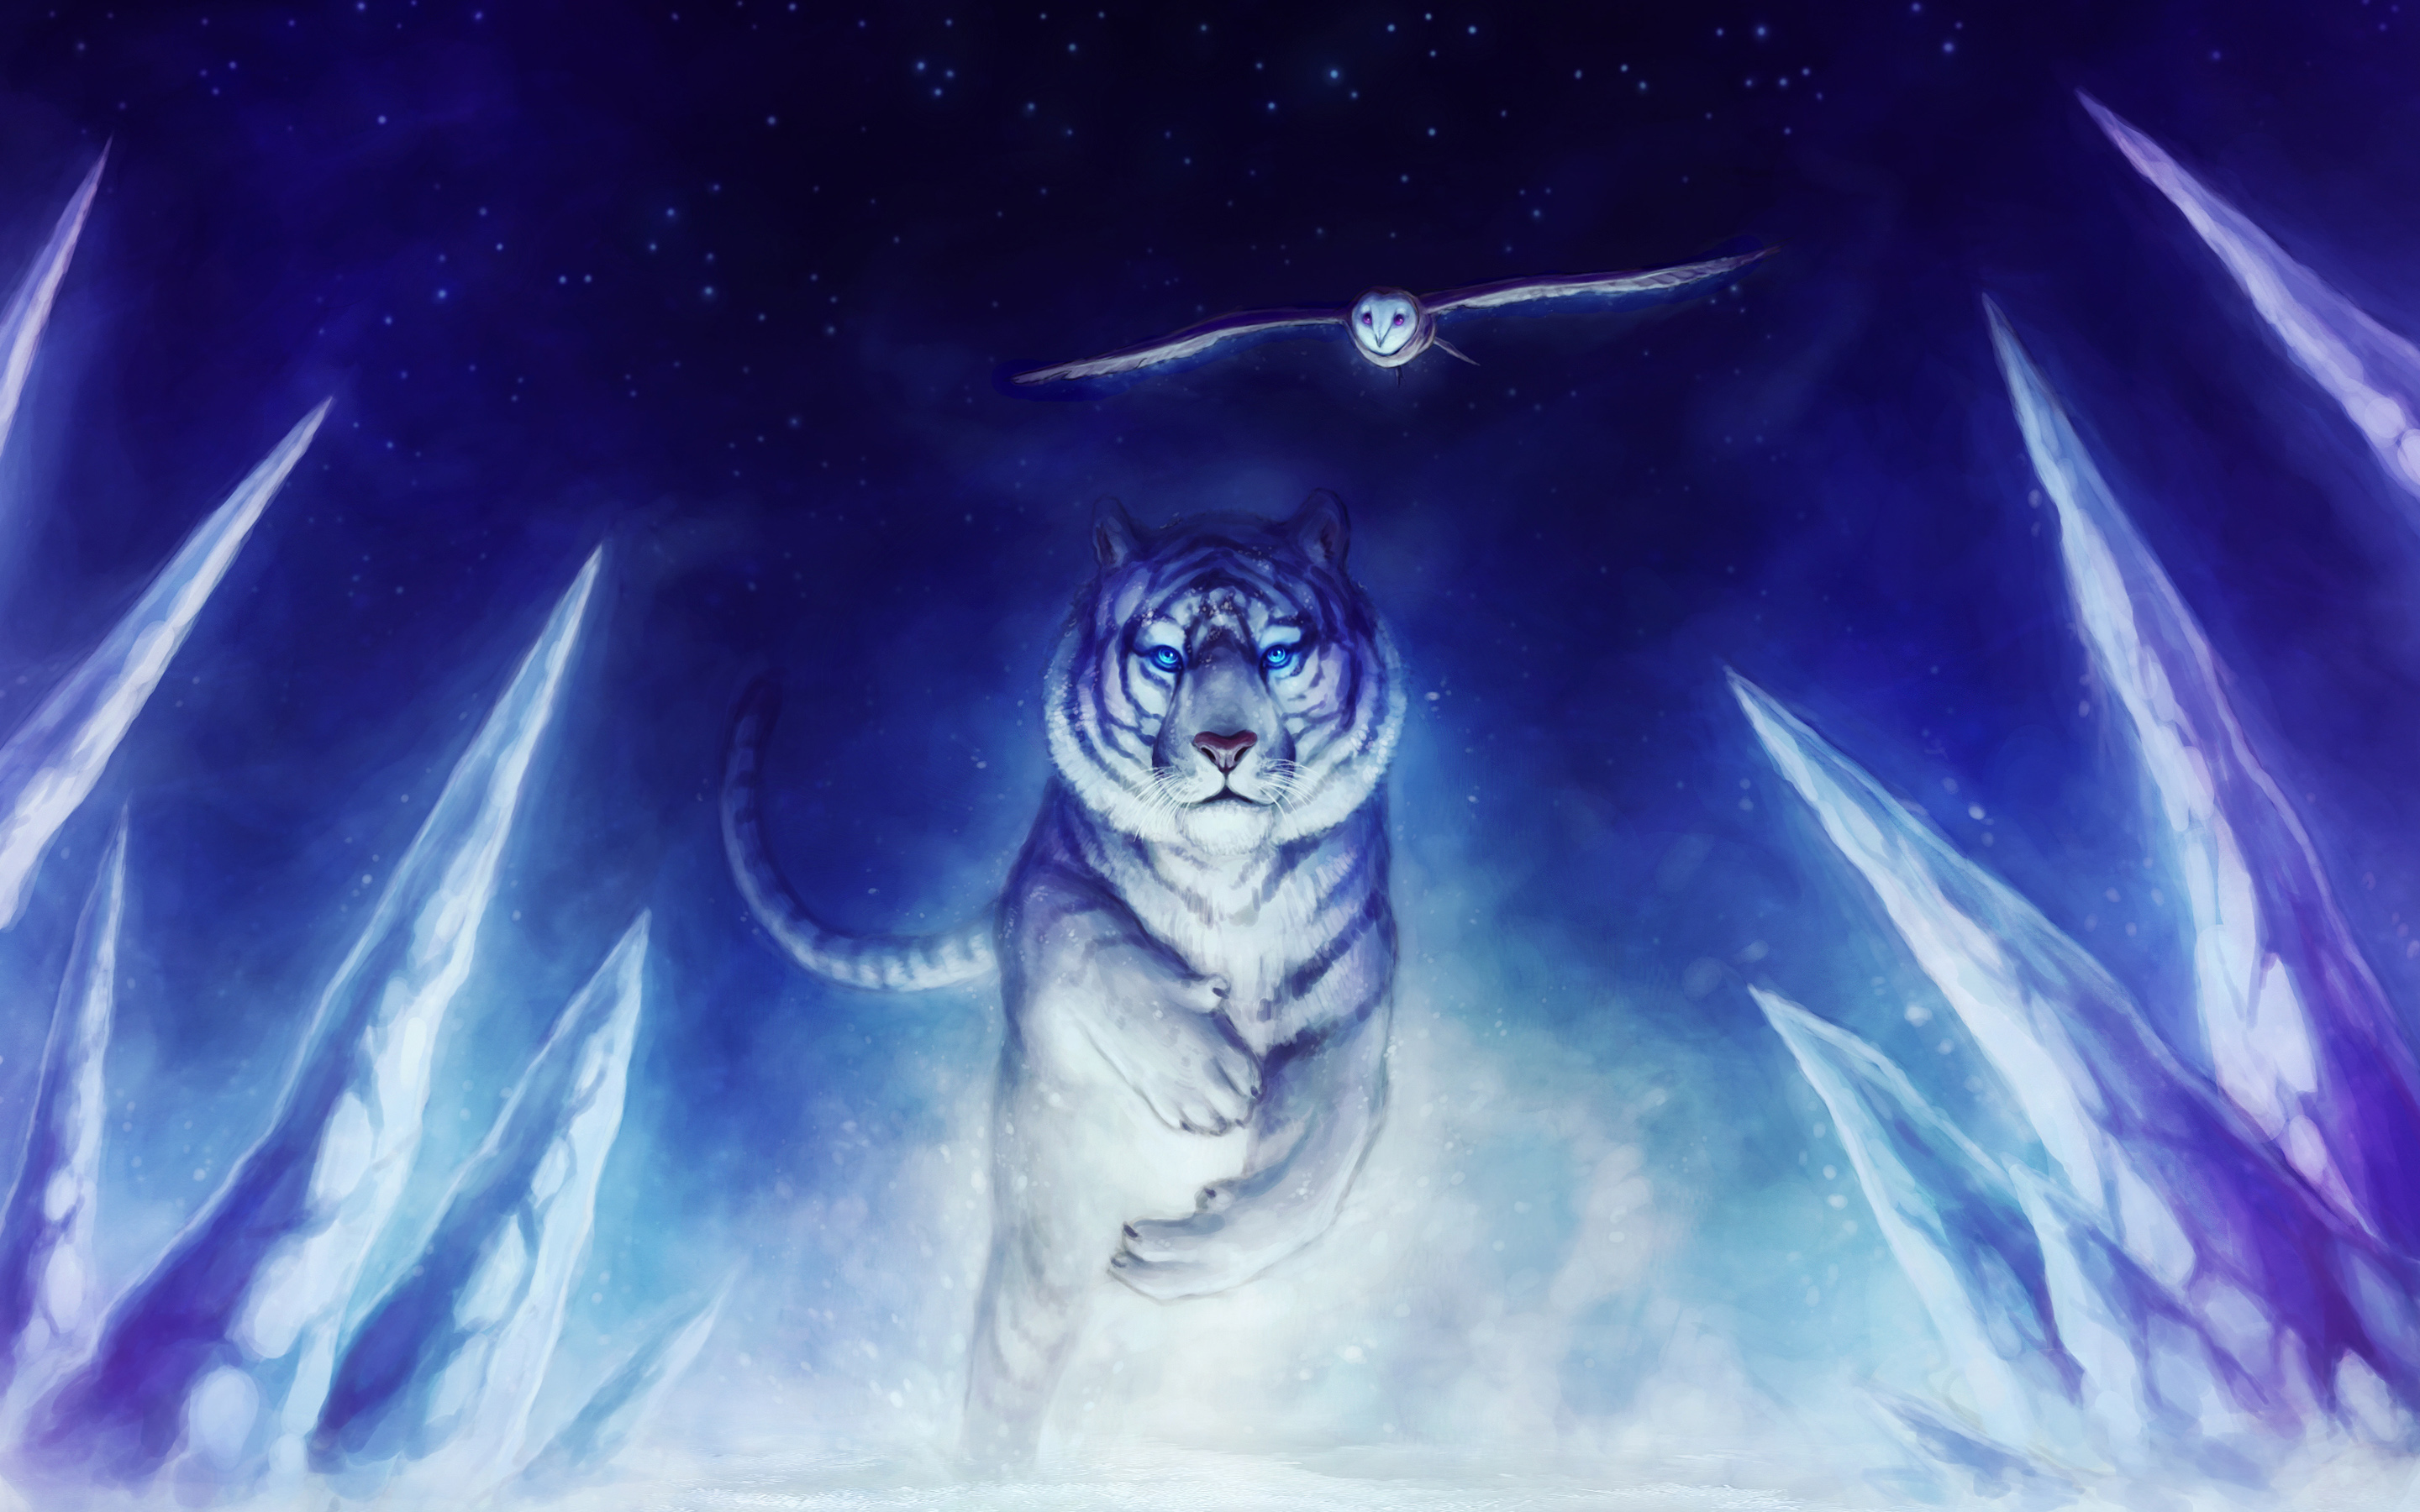 White Tiger Owl Art 367.89 Kb